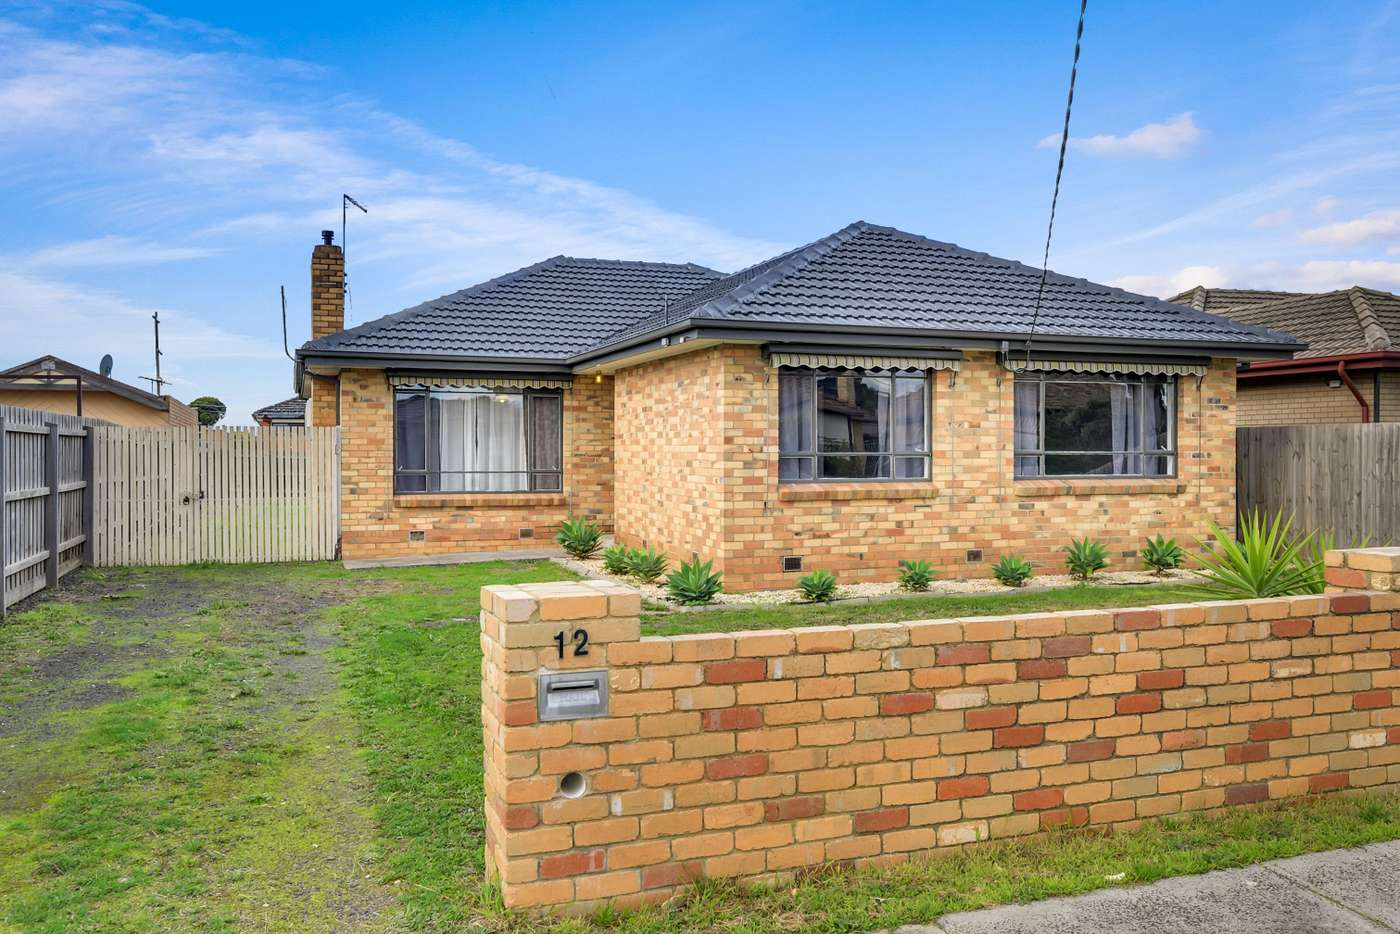 Main view of Homely house listing, 12 Palm Street, Thomastown VIC 3074